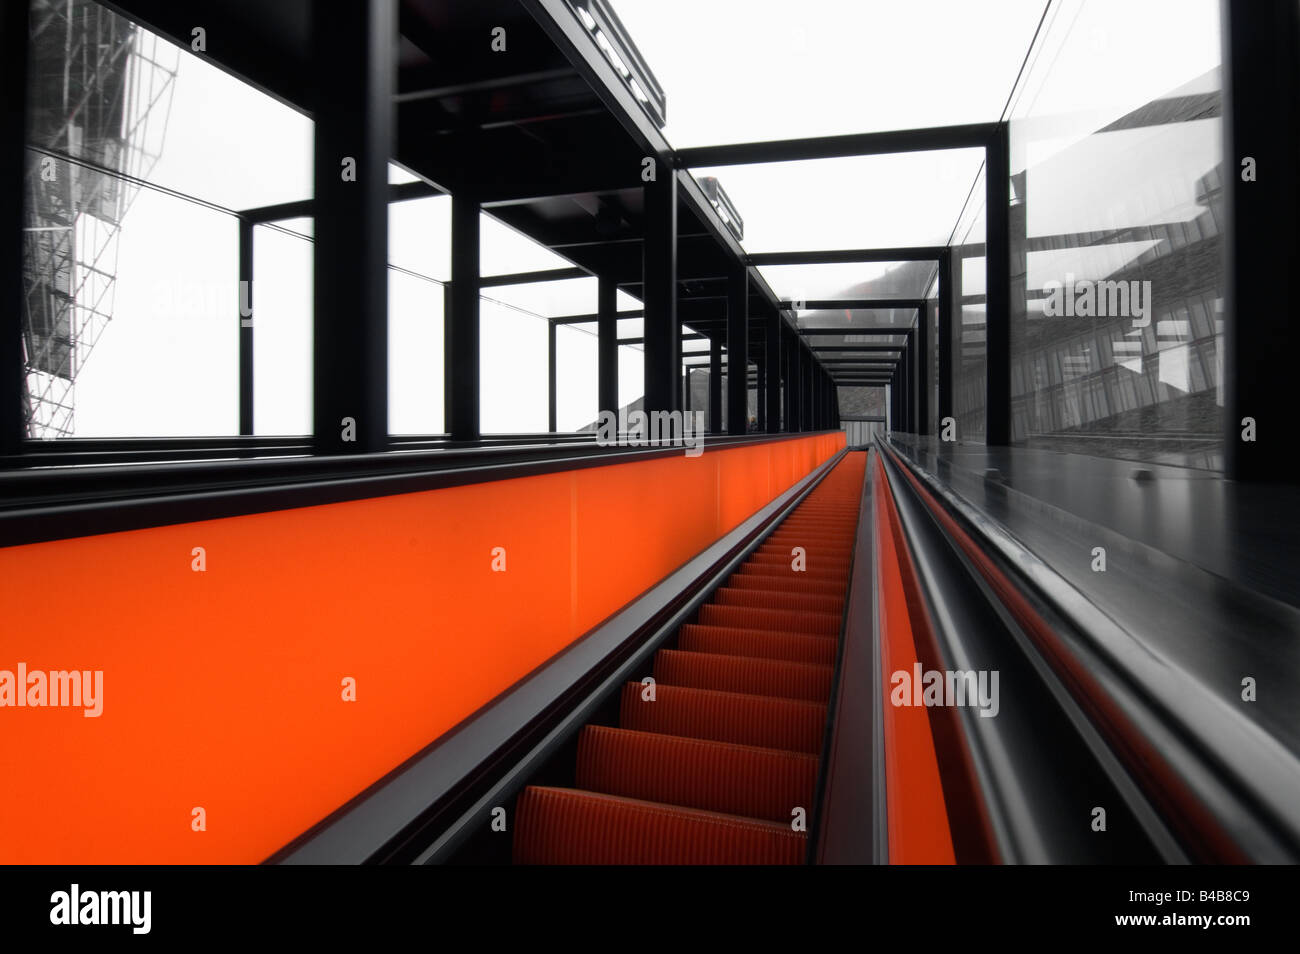 Red lighted escalalator at Weltkulturerbe Zeche Zollverein in Essen Germany - Stock Image